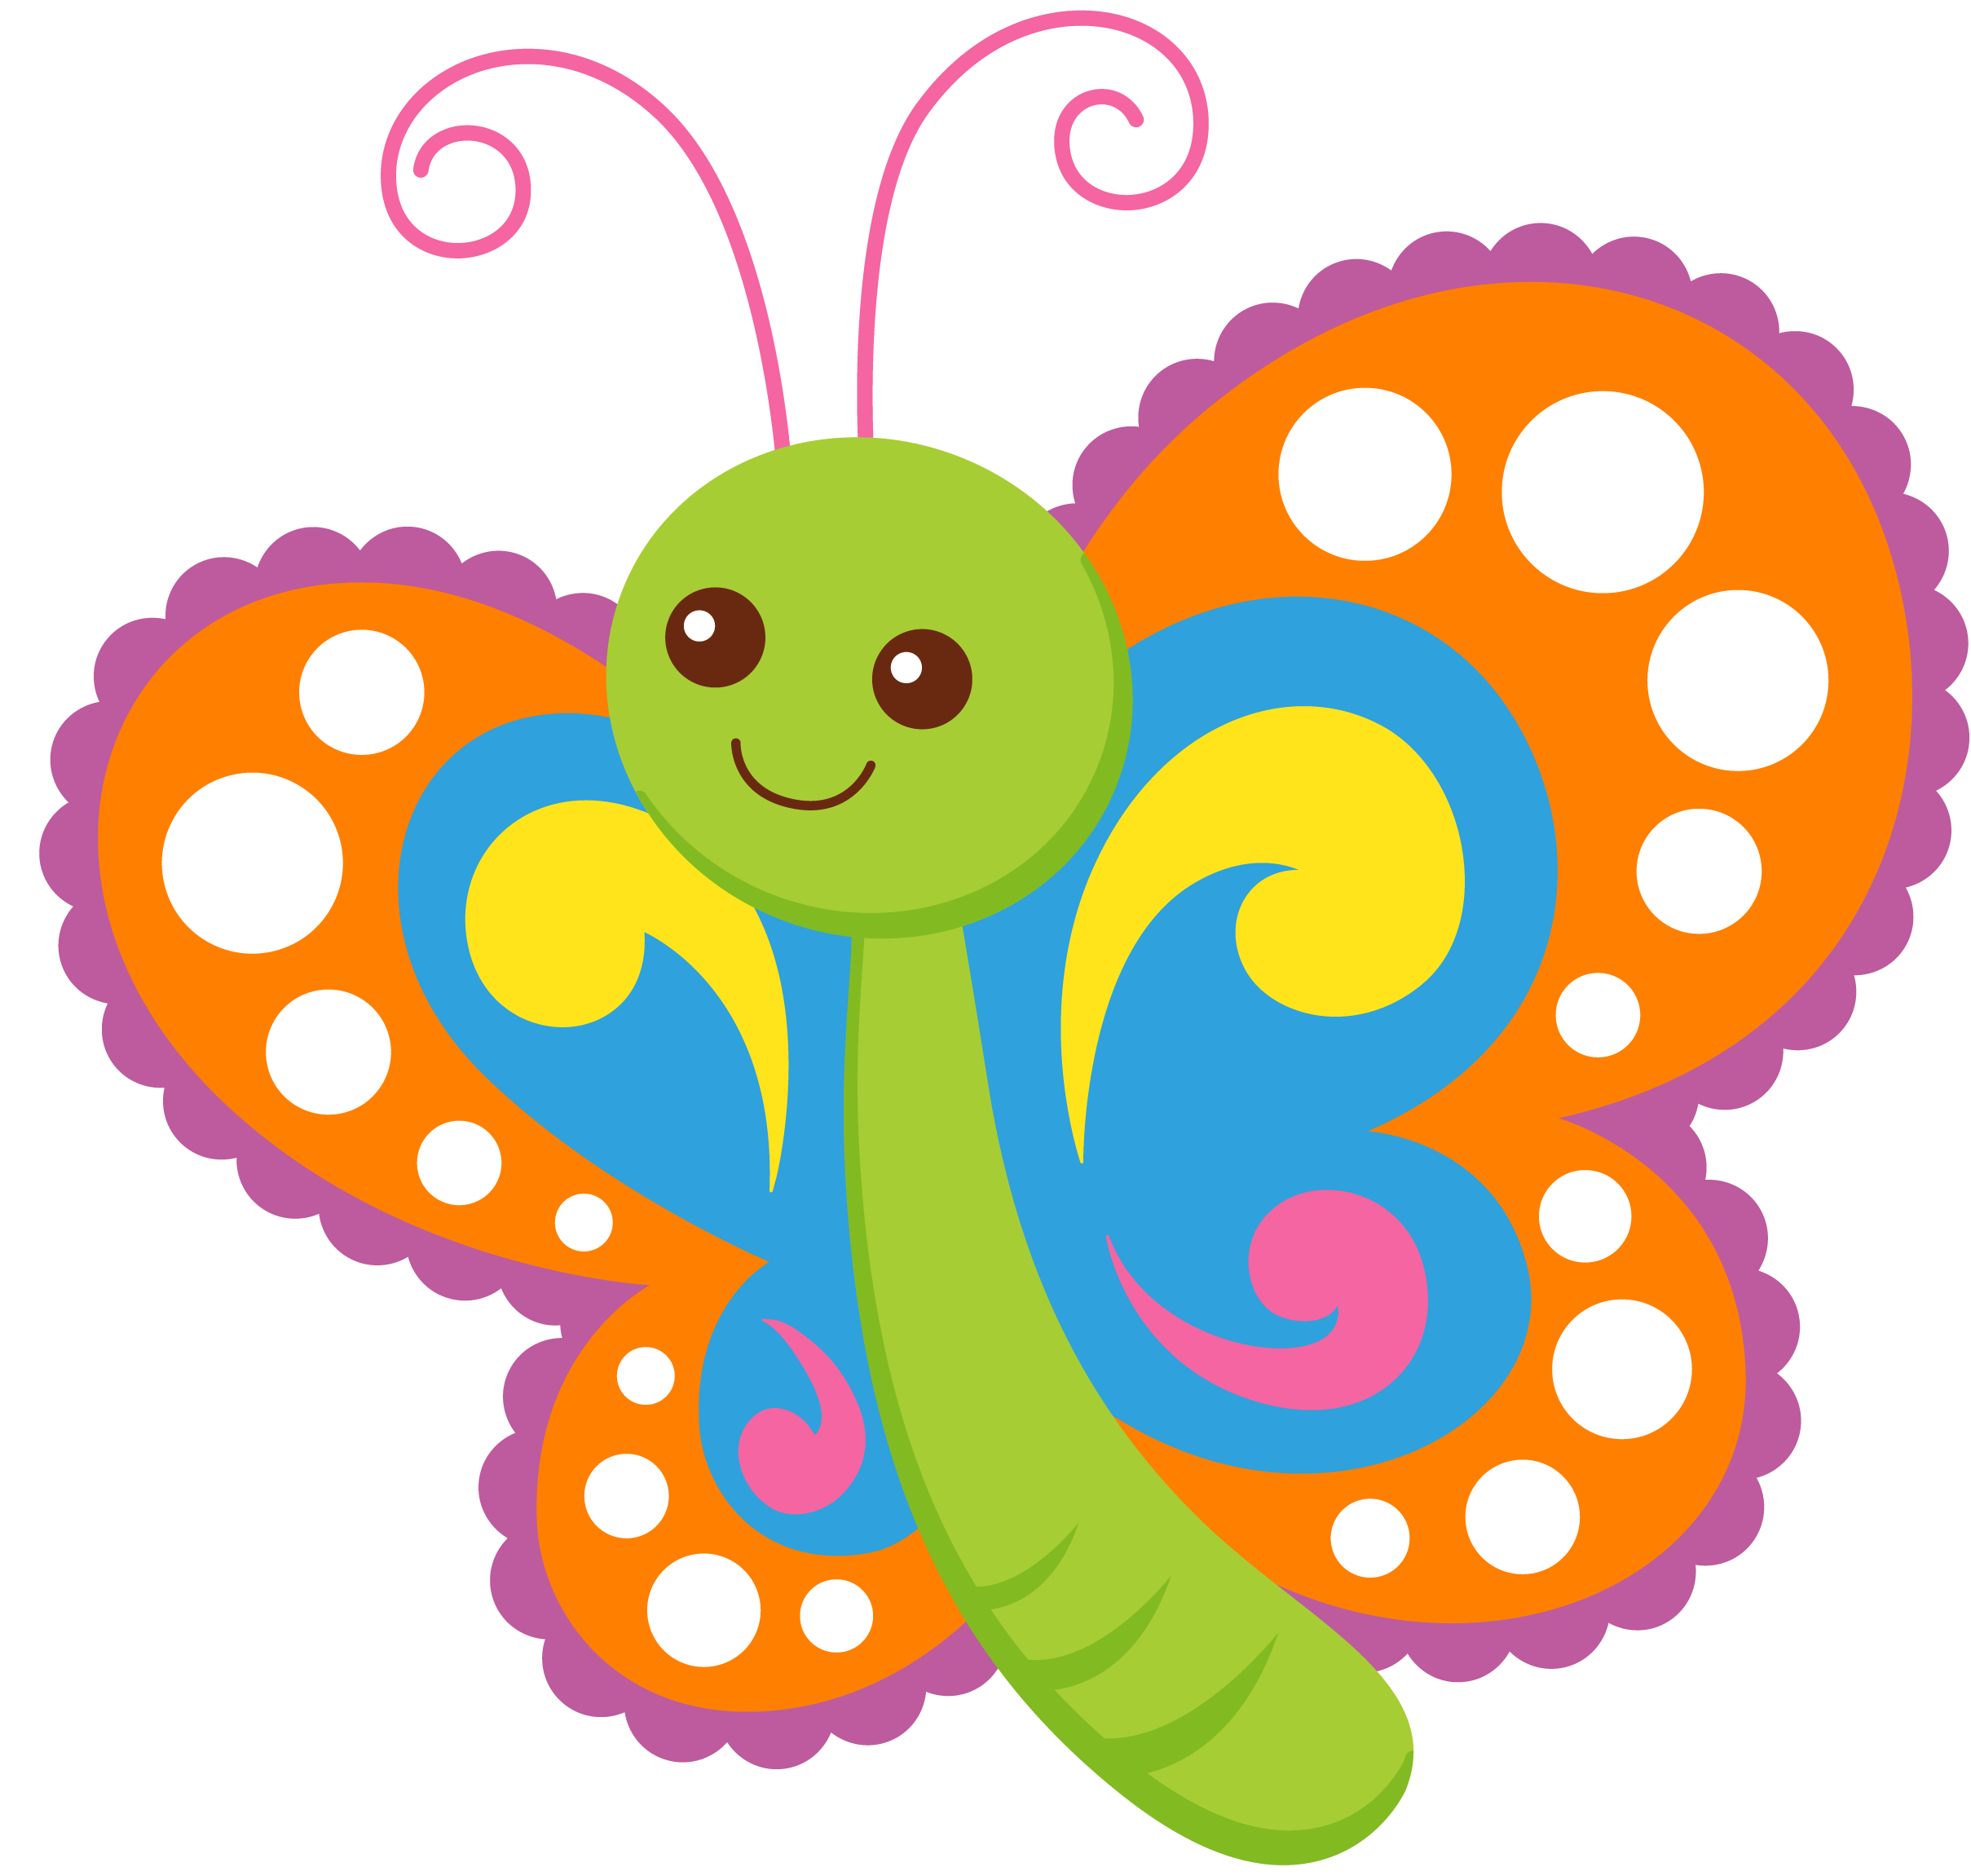 banner transparent stock Photo by daniellemoraesfalcao minus. Child clipart butterfly.